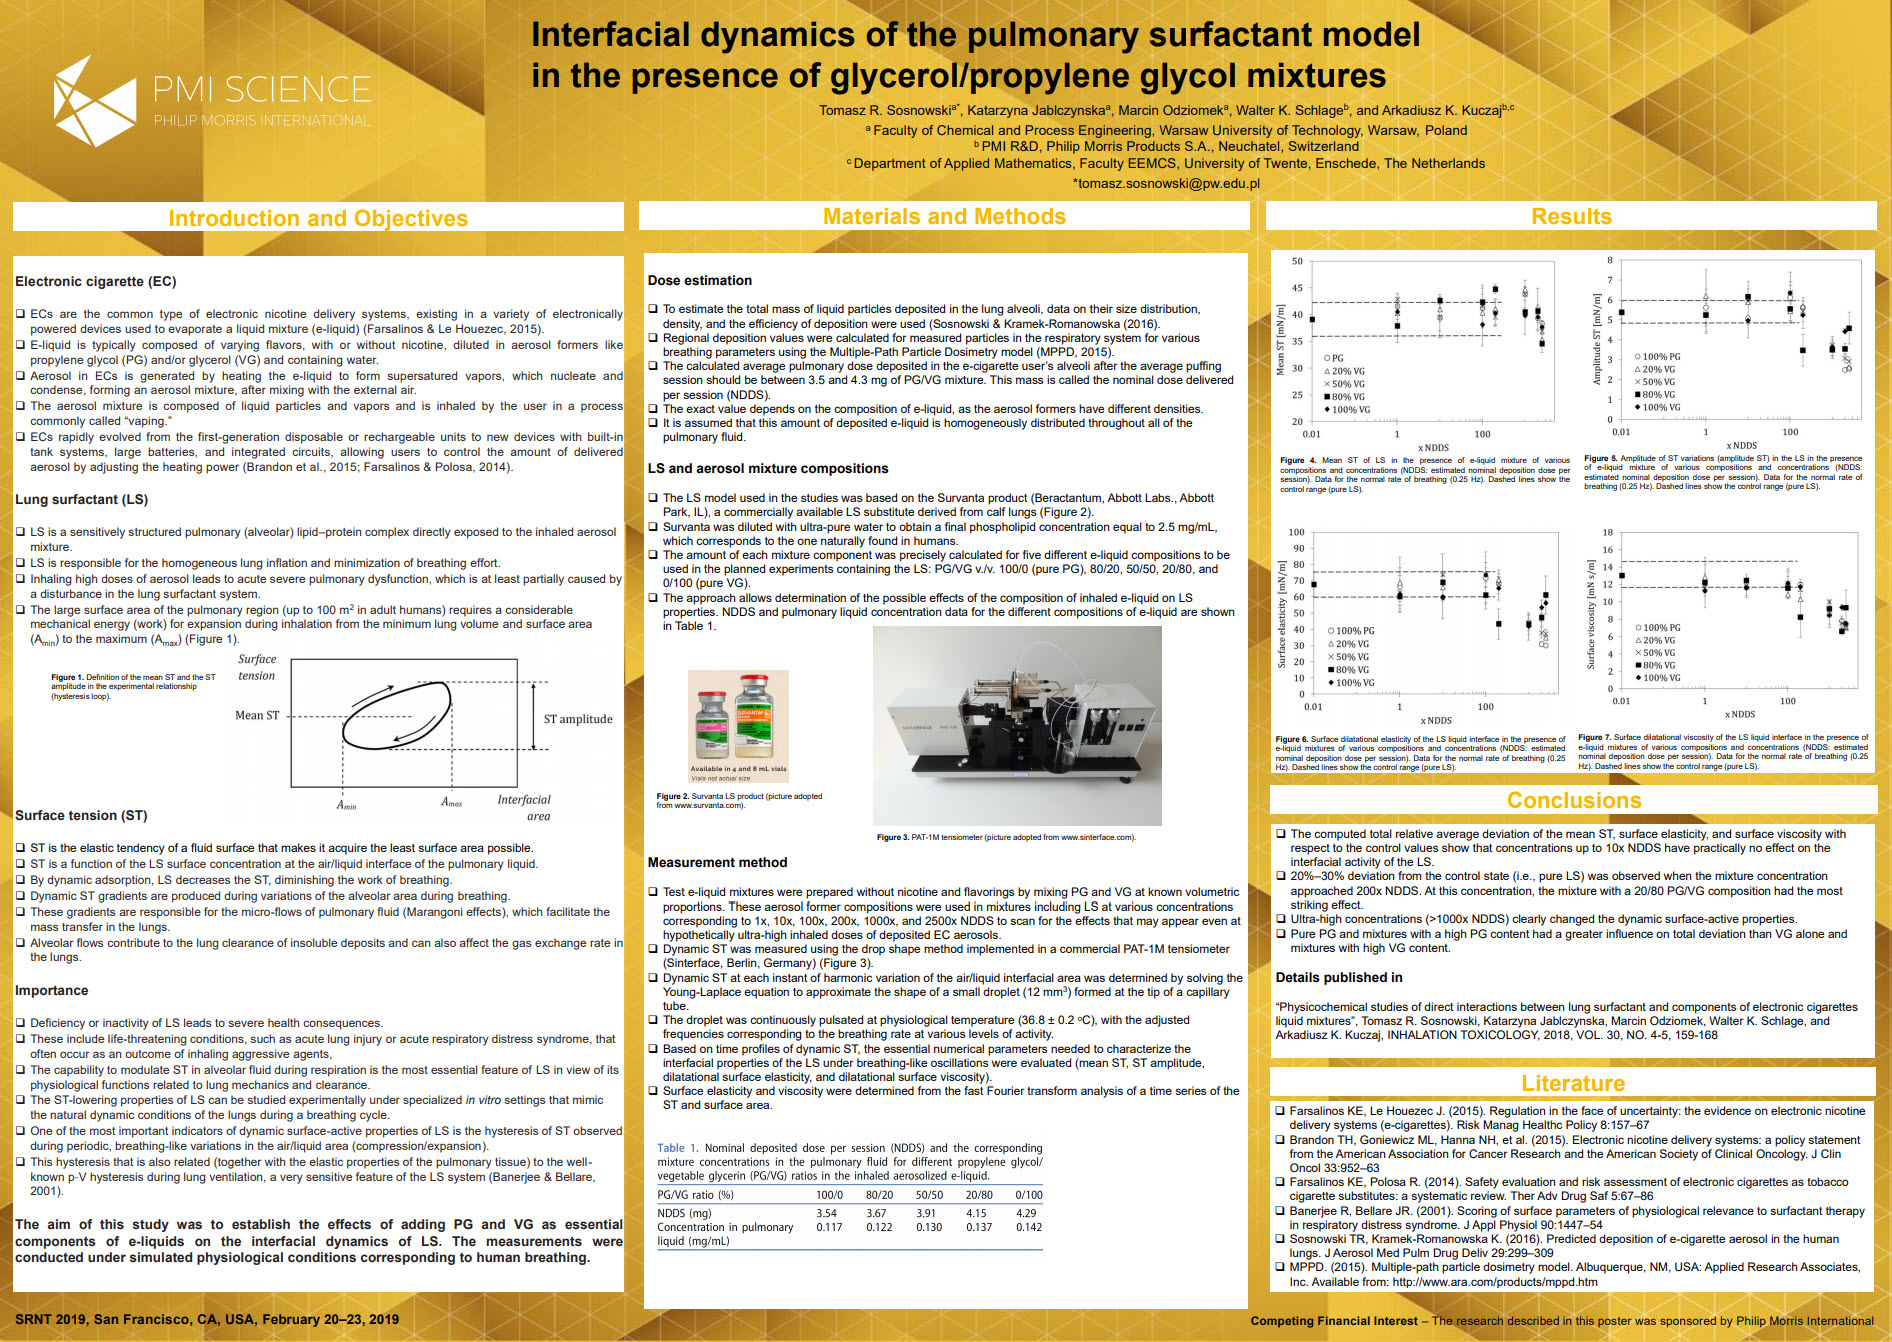 A. Kuczaj_ Interfacial dynamics of the model pulmonary surfactant_